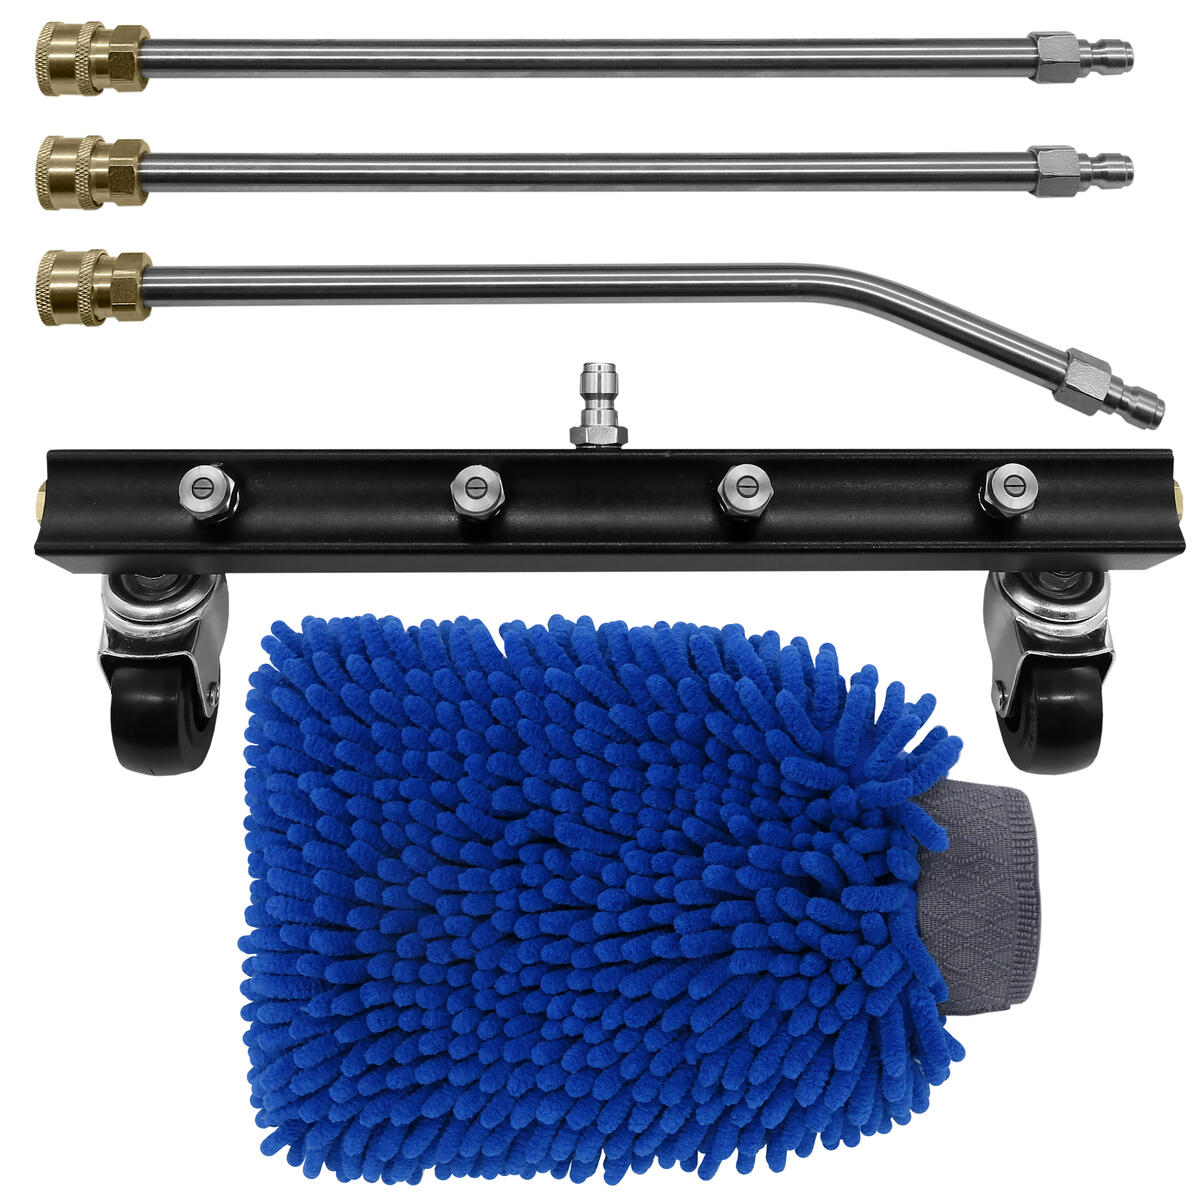 EZJOY Undercarriage Cleaner Kit – Undercarriage Cleaner with 3 Extension Wands – 4000 PSI Undercarriage Washer and Premium Microfiber Wash Mitt – User-Friendly Installation – Highly Durable